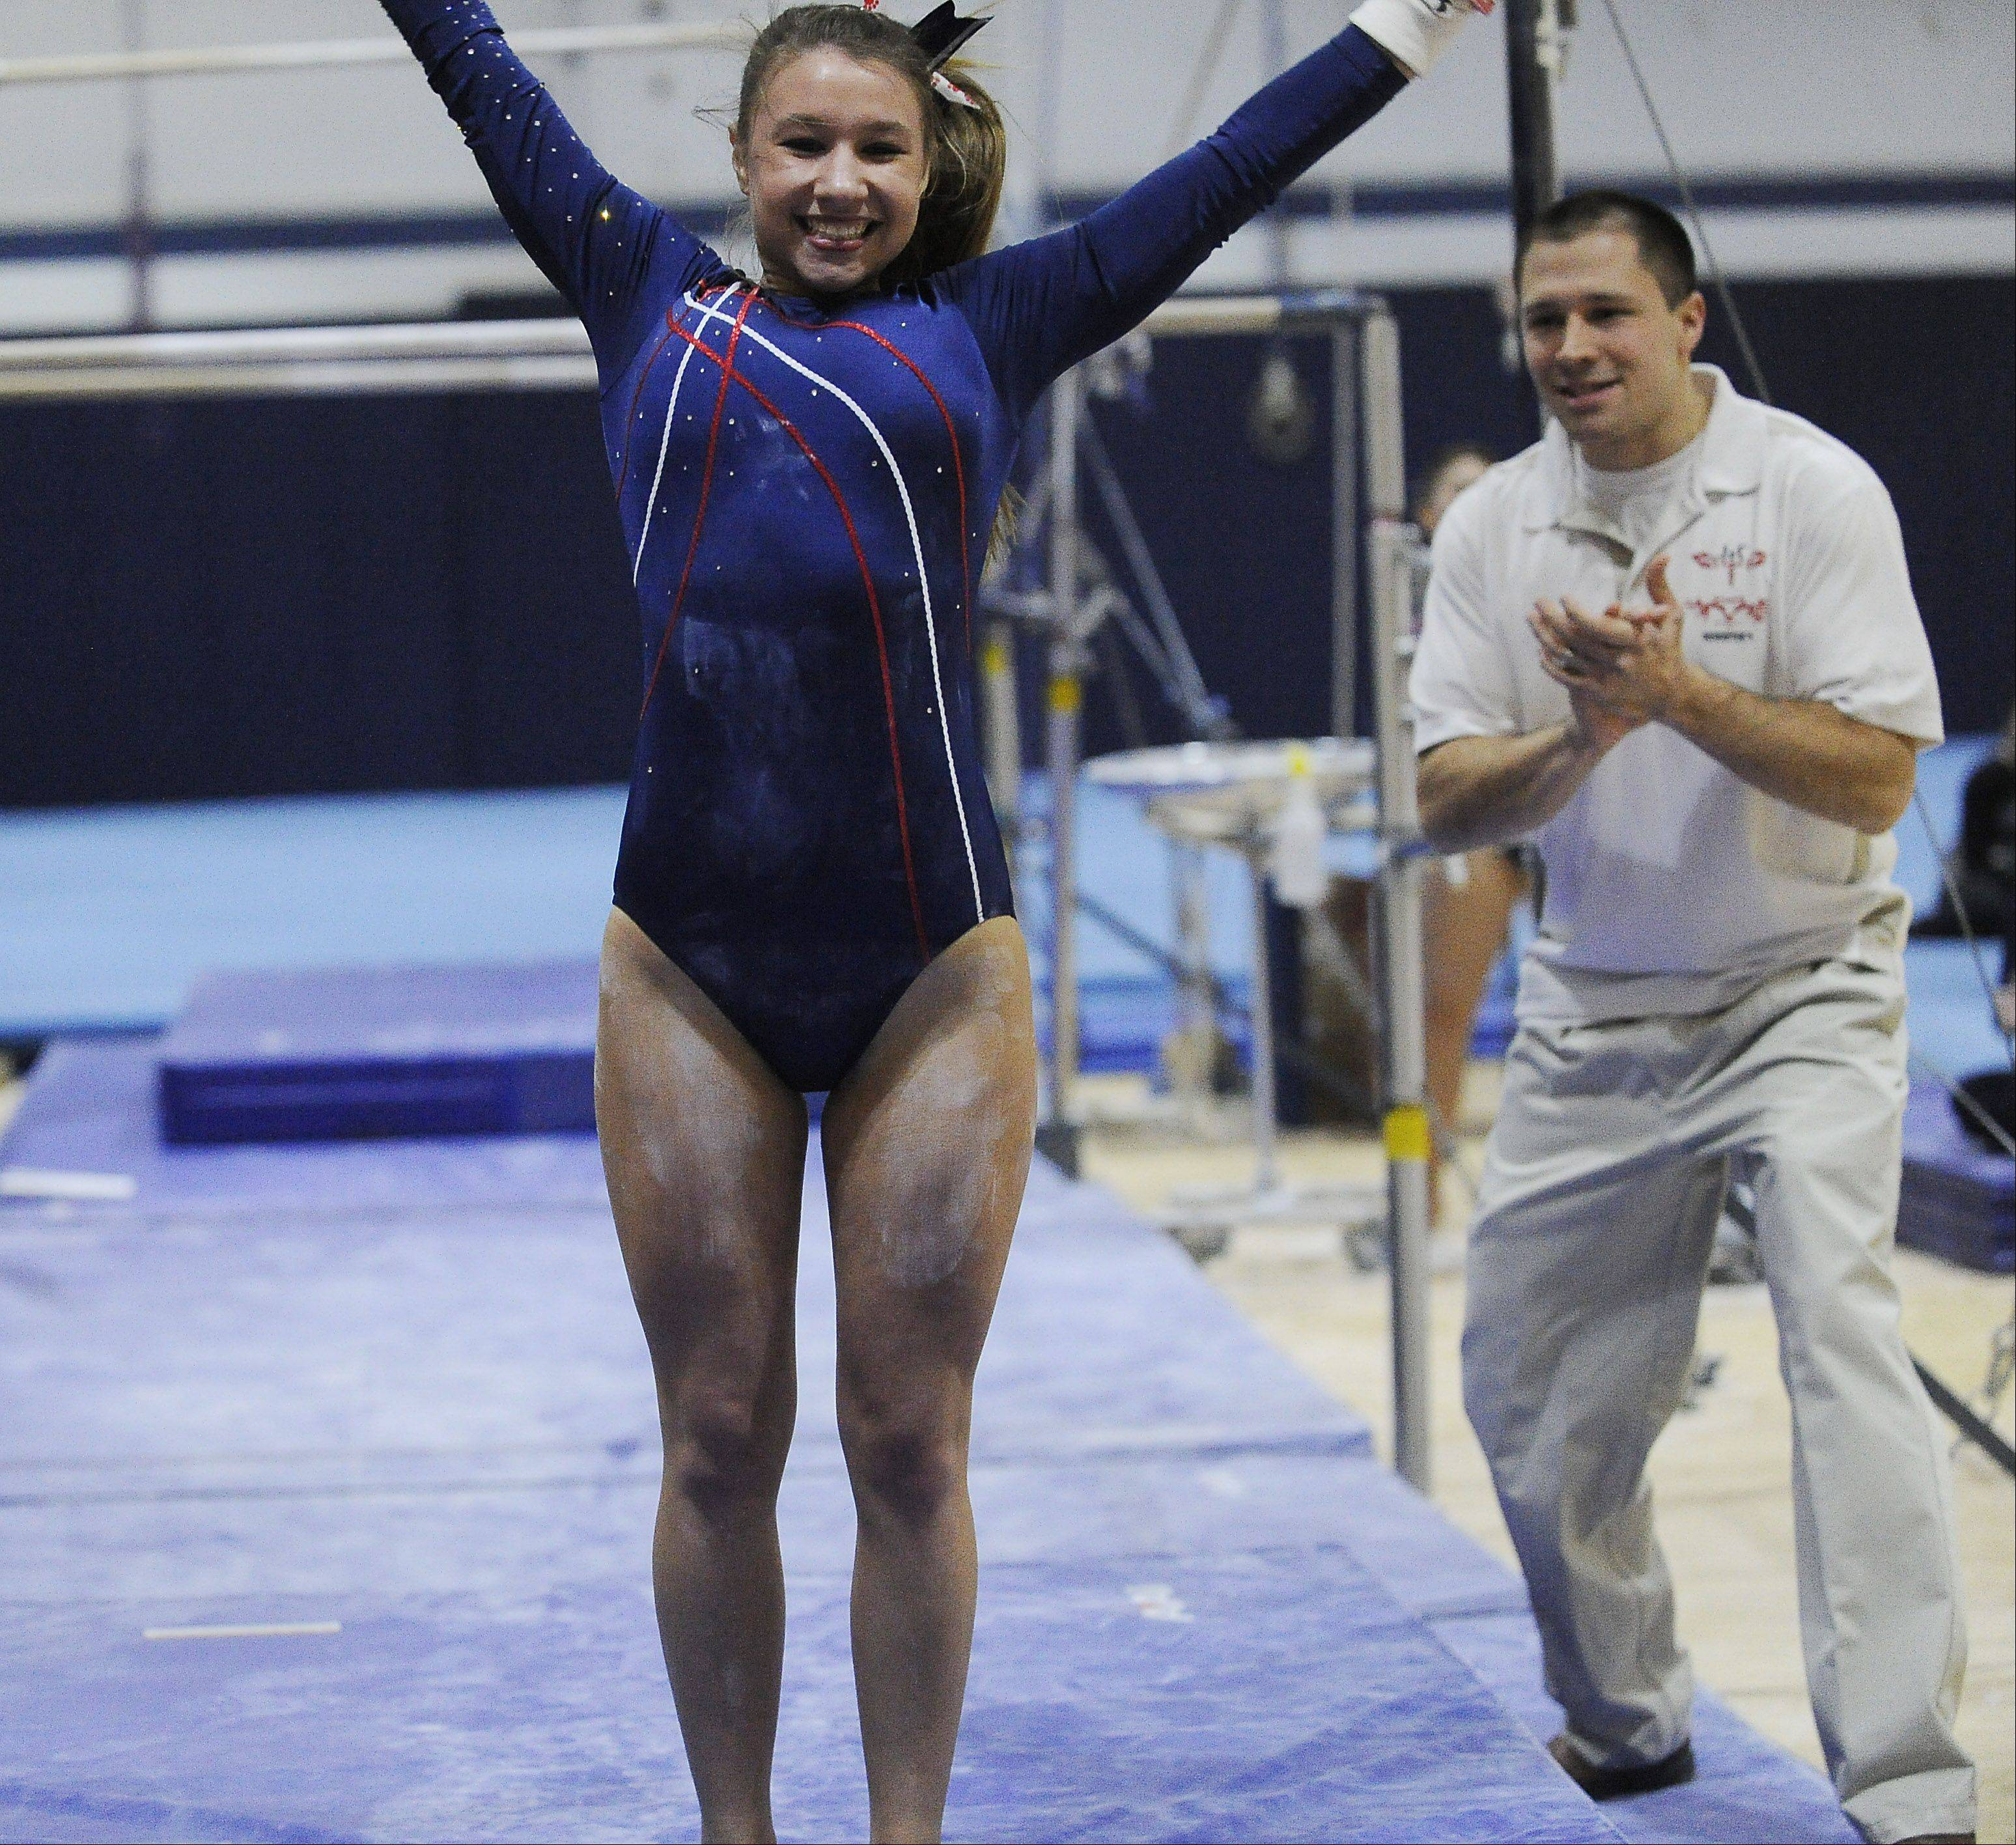 Conant's Sarah Starzynski is happy with her performance on the uneven parallel bars at Thursday's Conant regional.